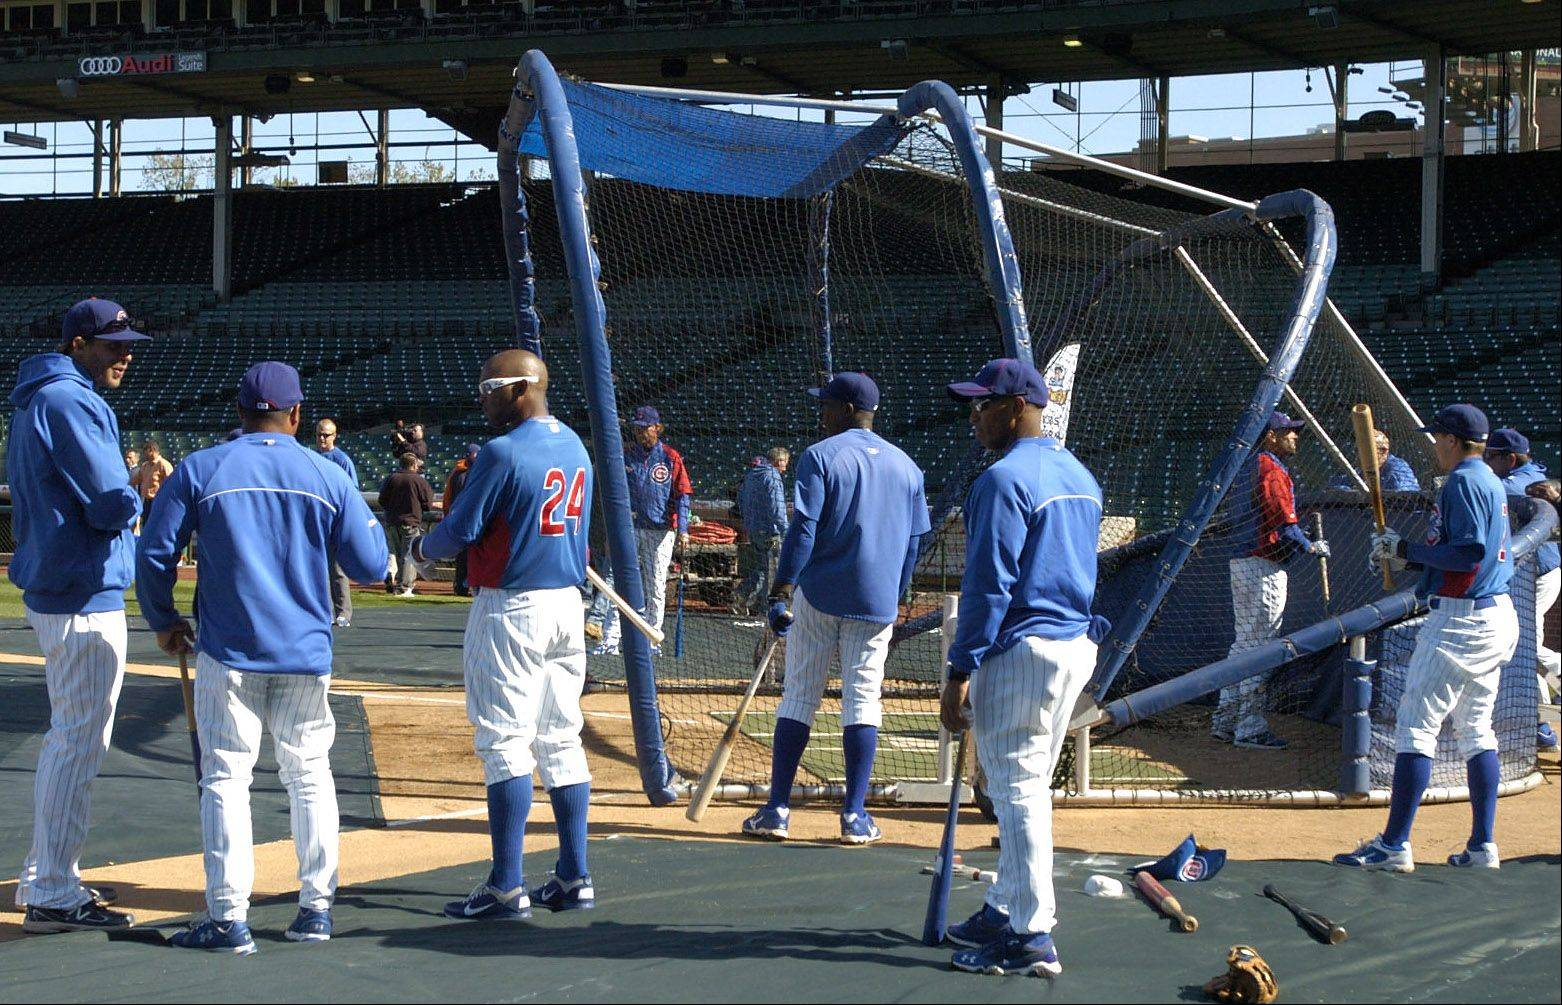 Players take batting practice.